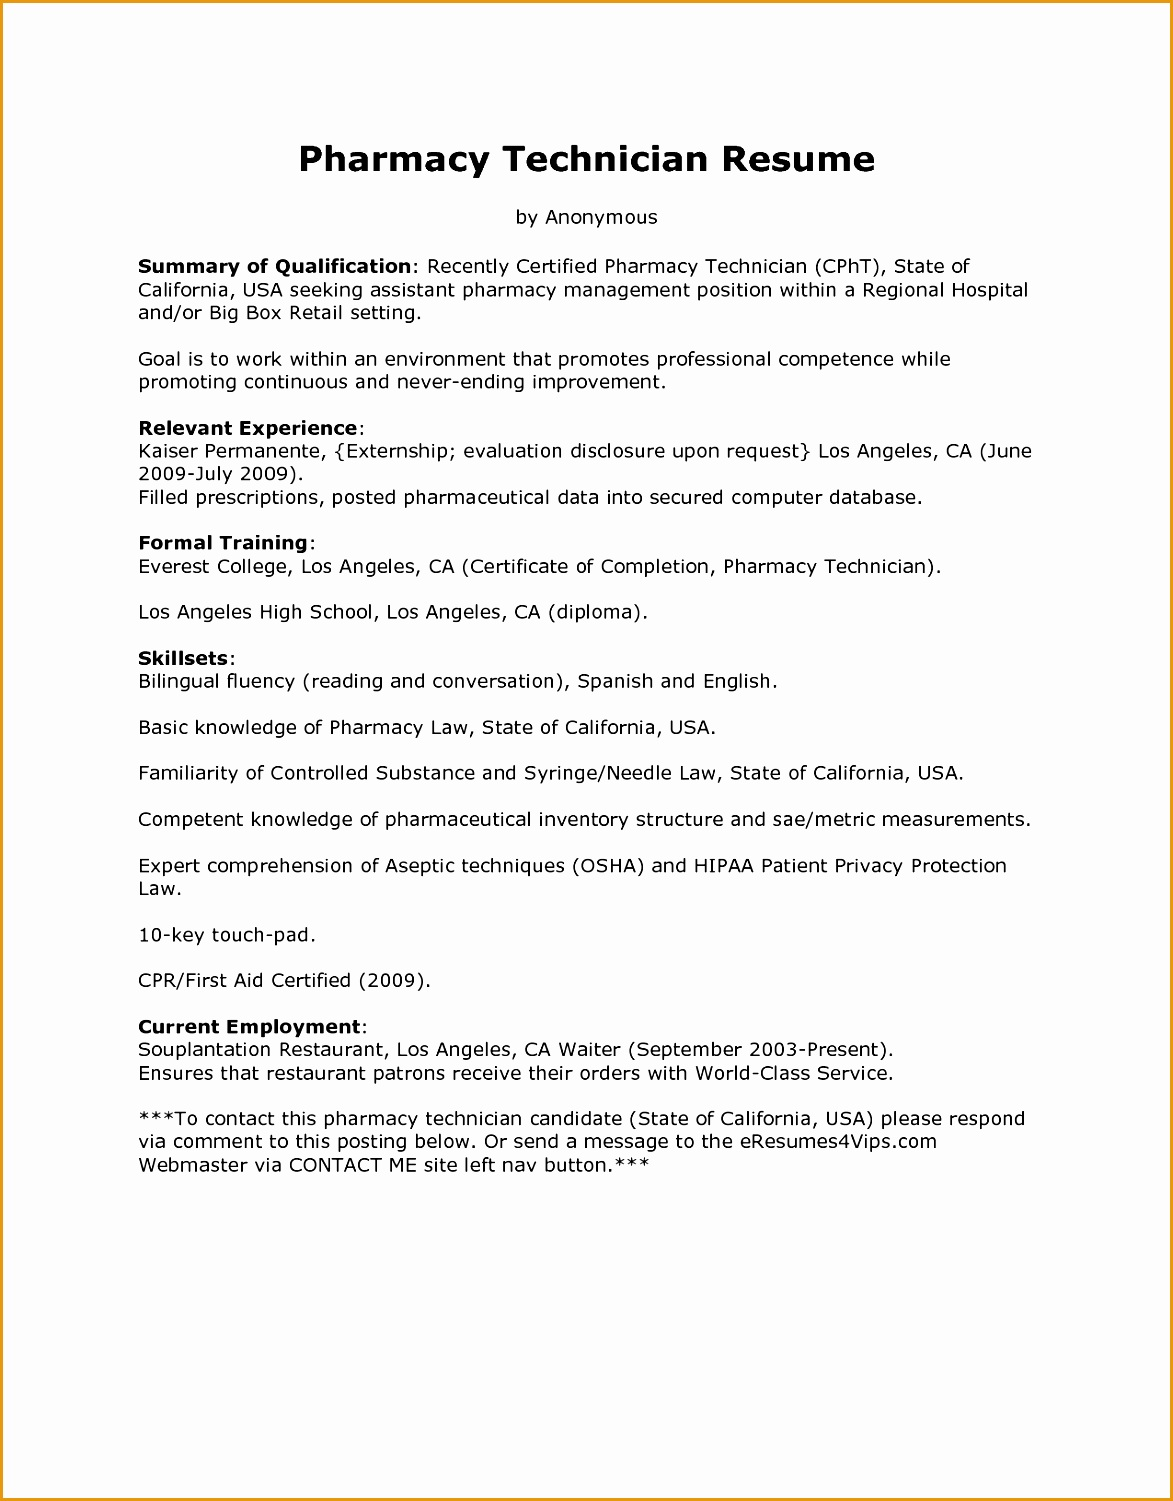 Pharmacist Resume Template 7 Pharmacist Curriculum Vitae Templates Free Samples